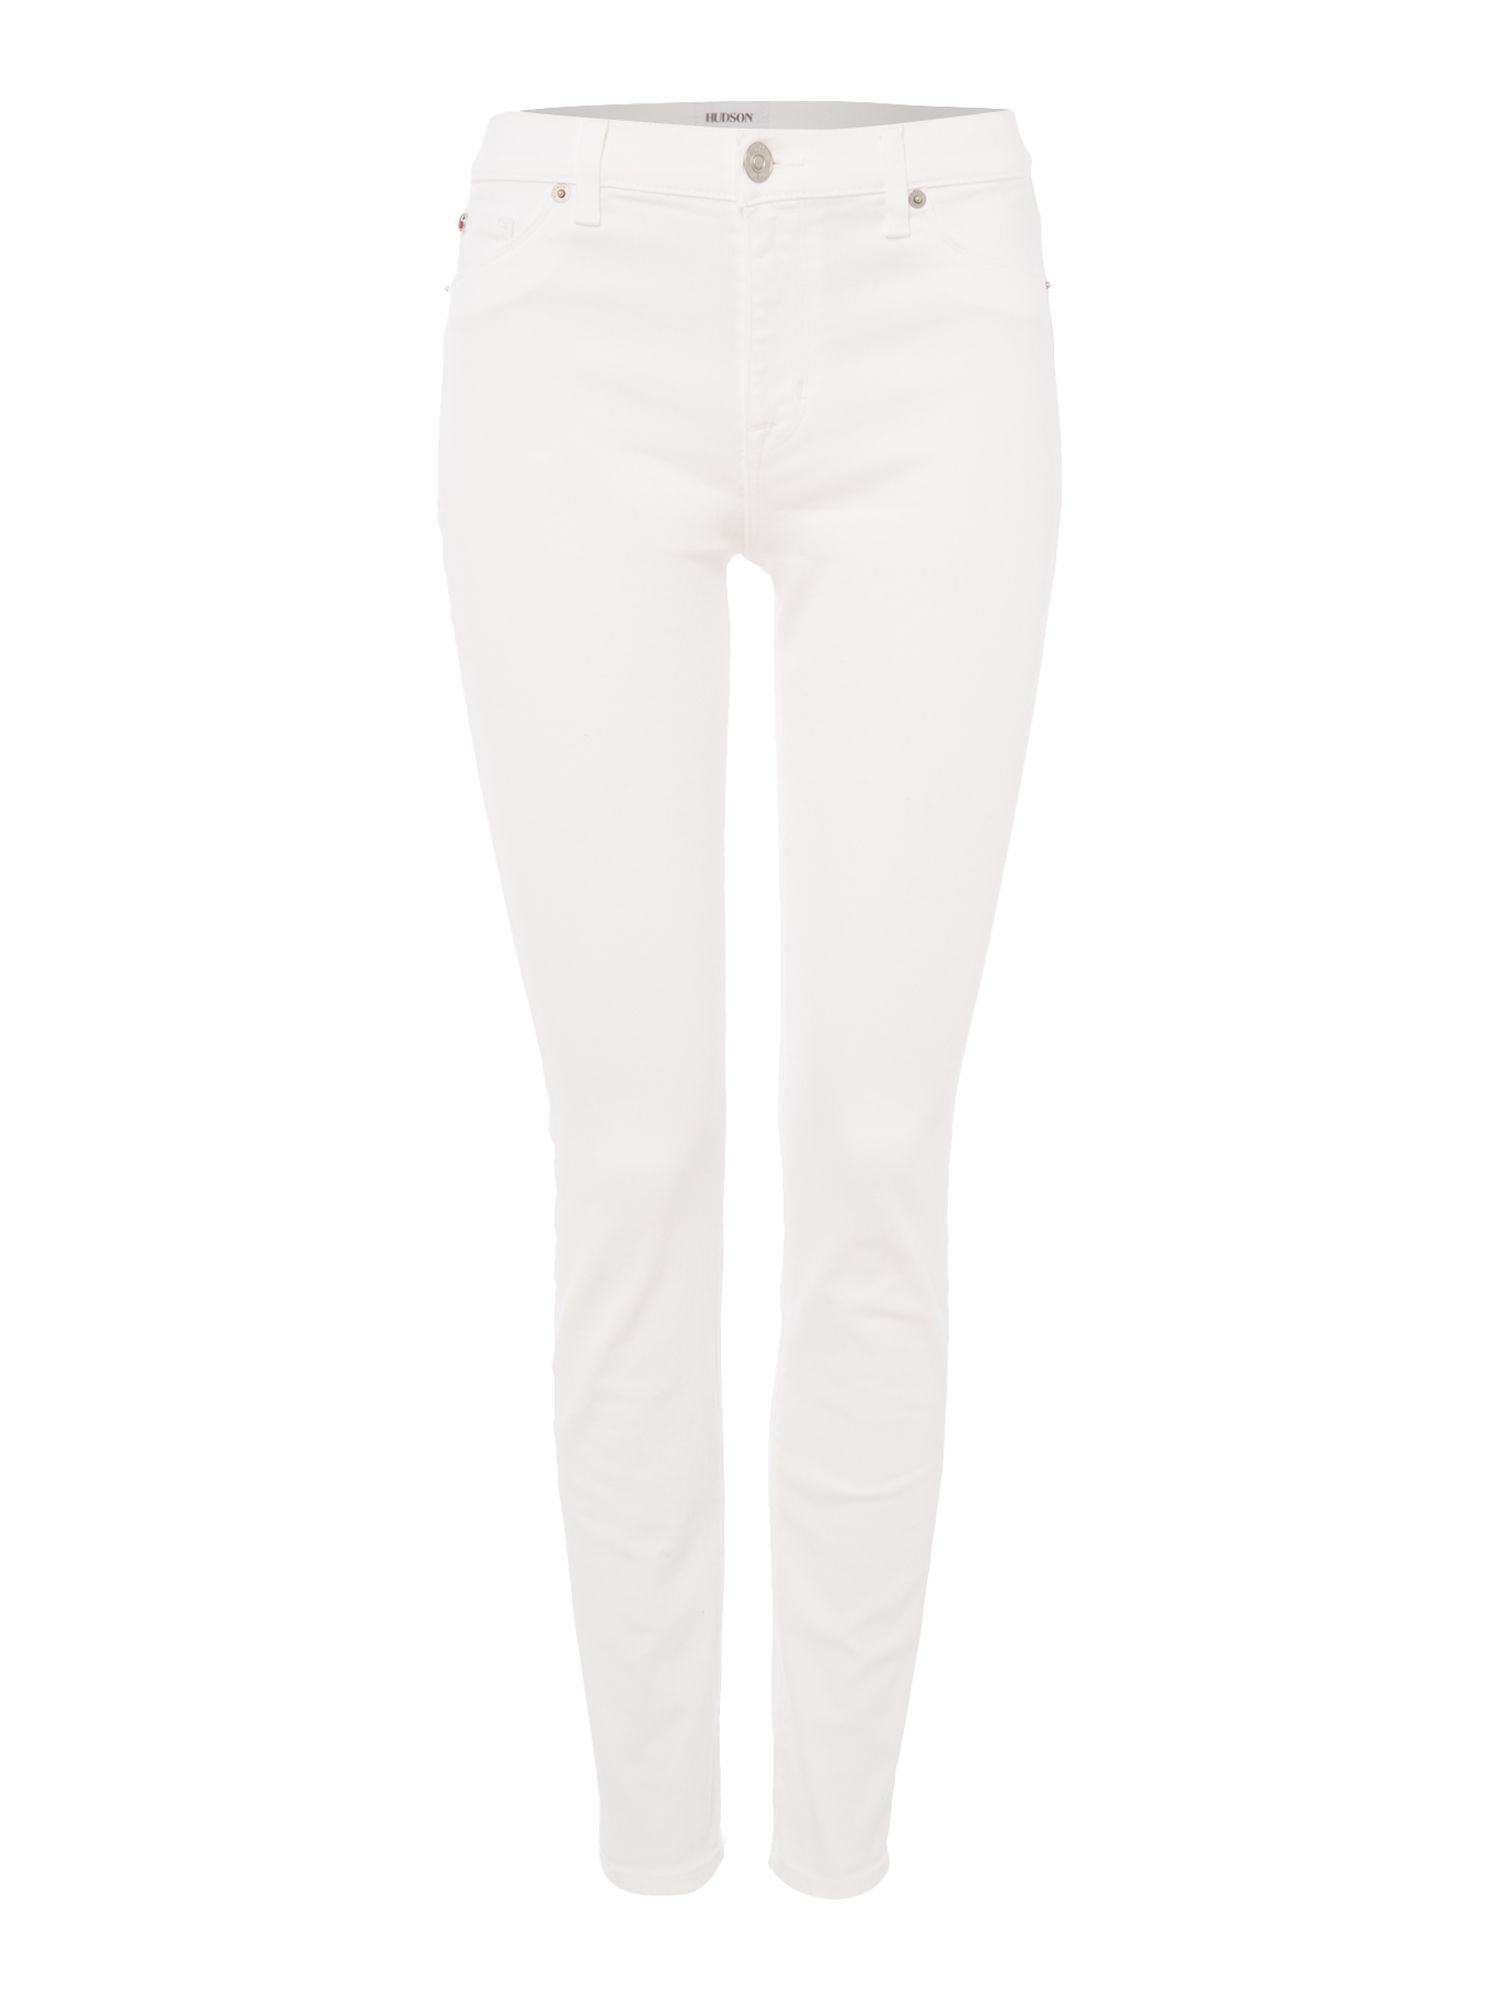 Hudson Jeans Nico midrise ankle superskinny jeans in white White